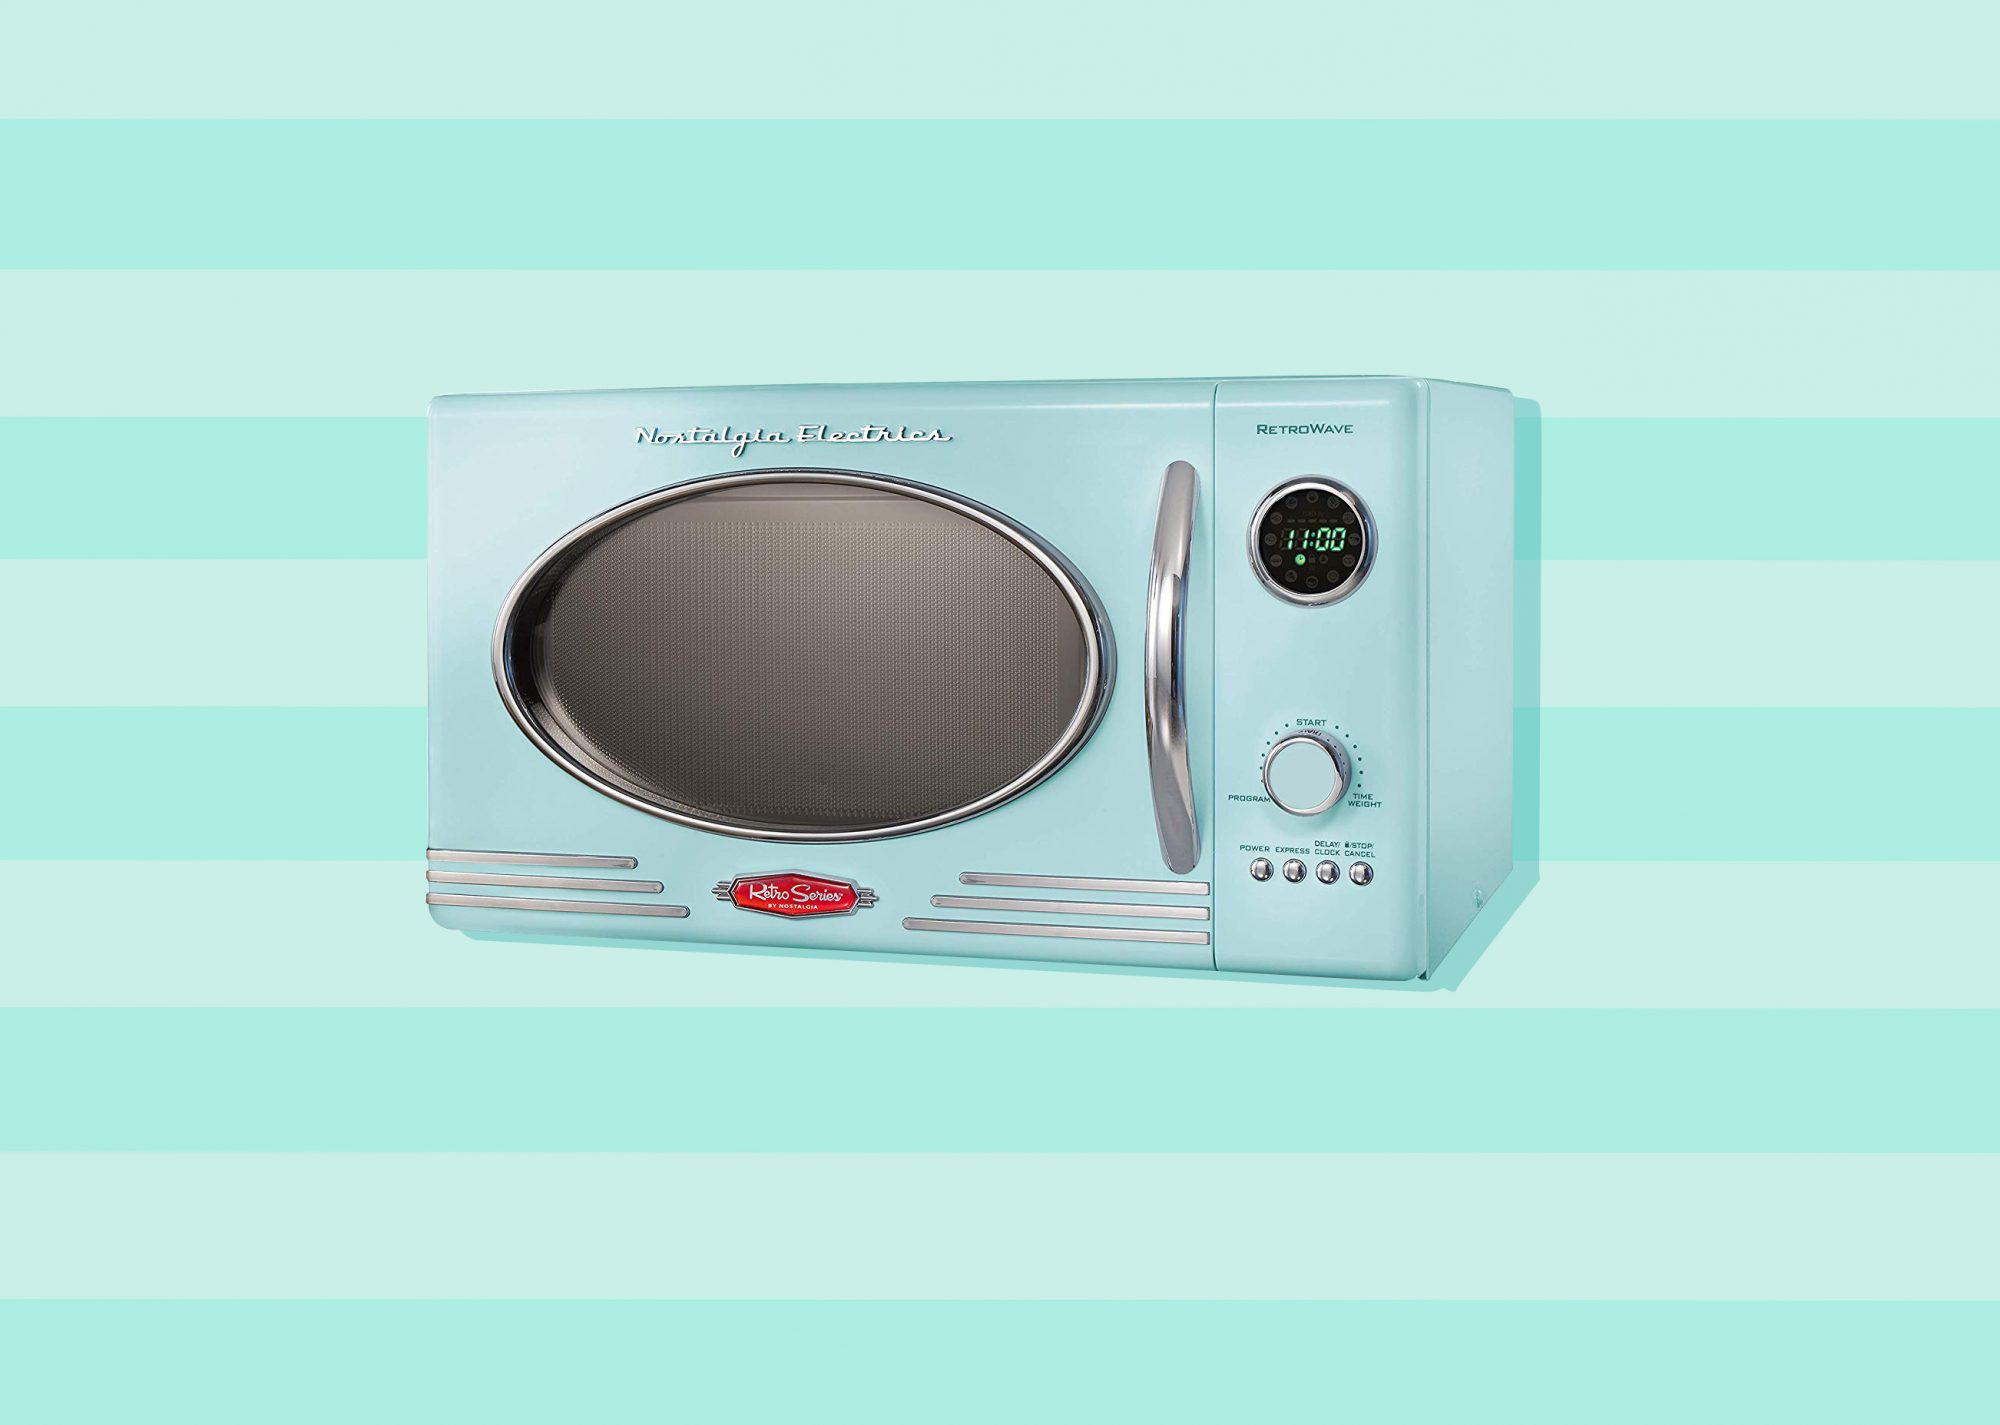 Stylish Microwaves and Toaster Ovens, mint green retro microwave from Nostalgia